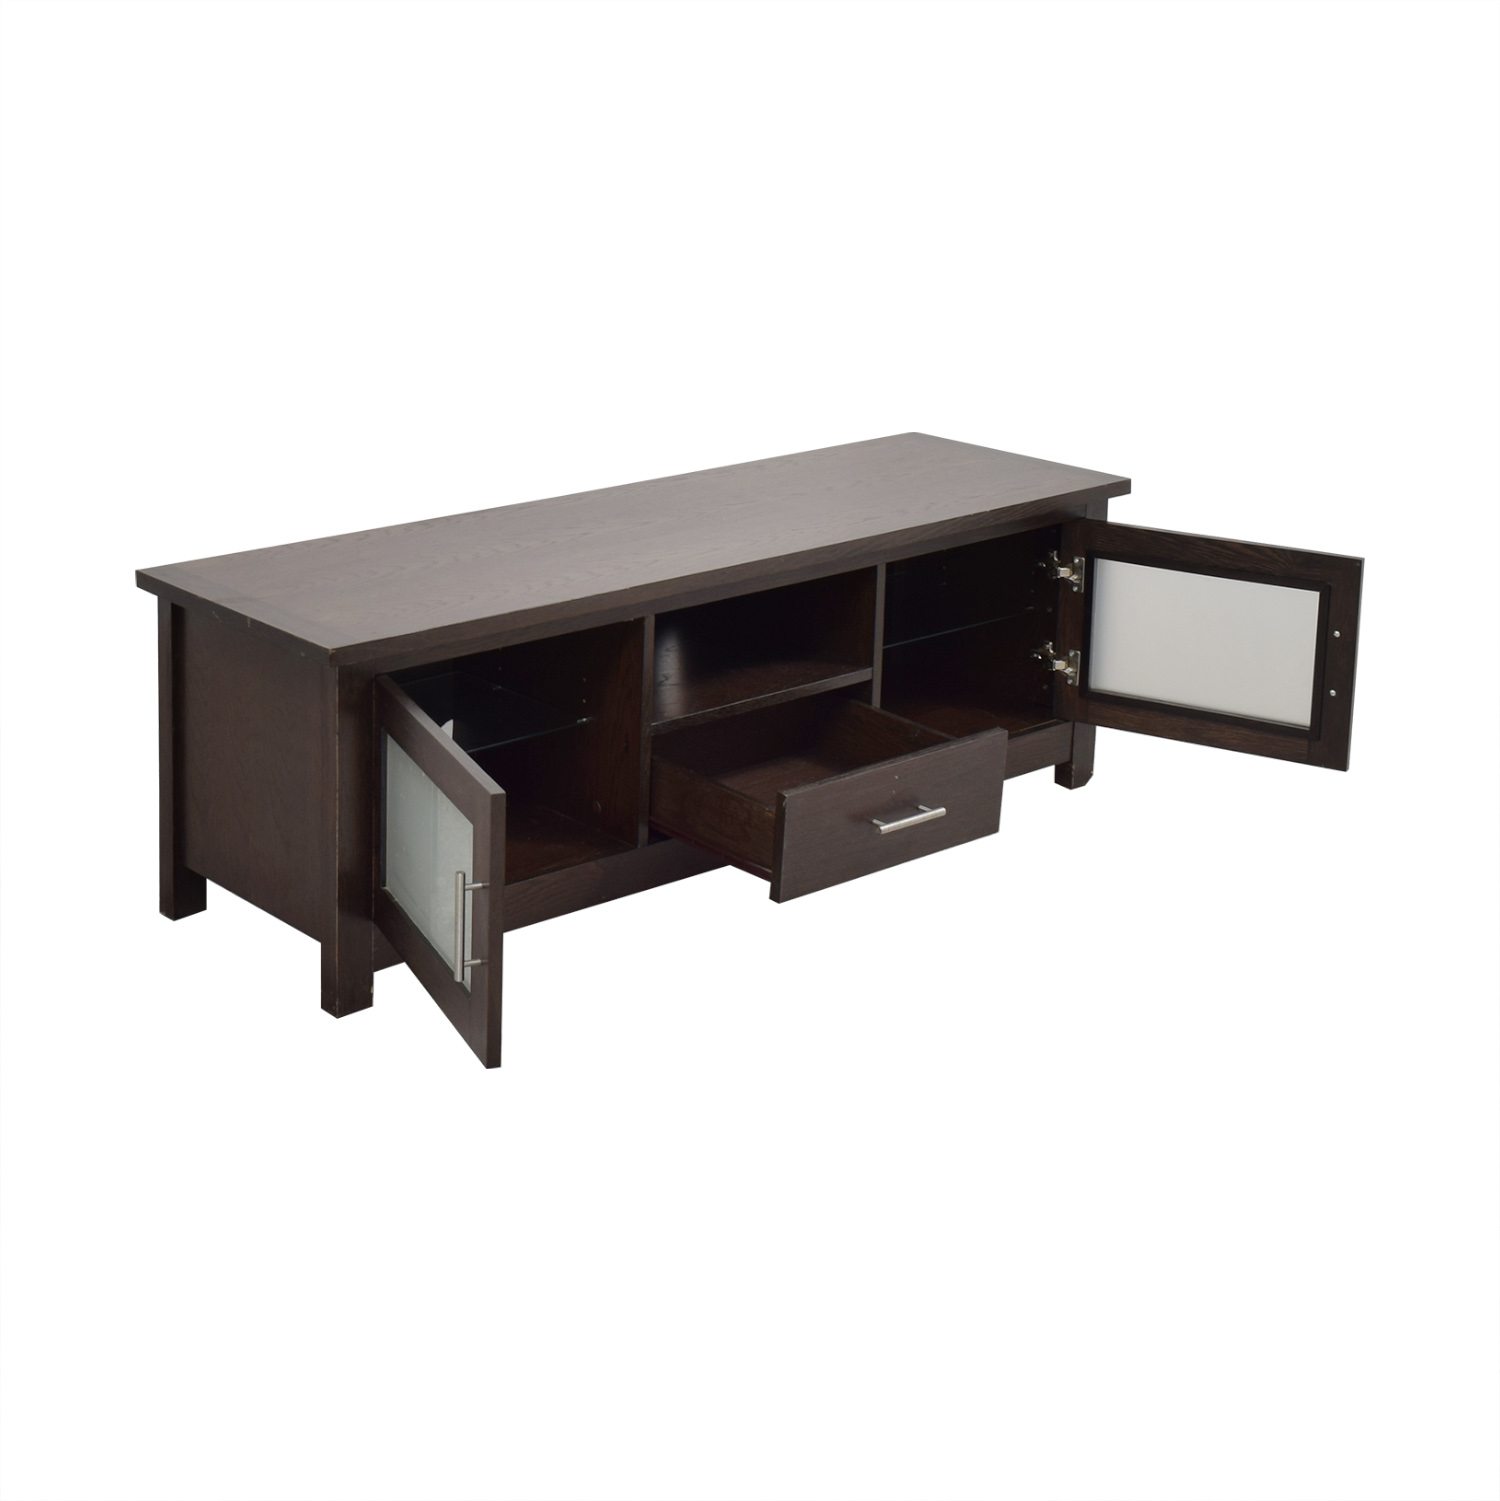 Coaster Fine Furniture Coaster Fine Furniture Media Console on sale